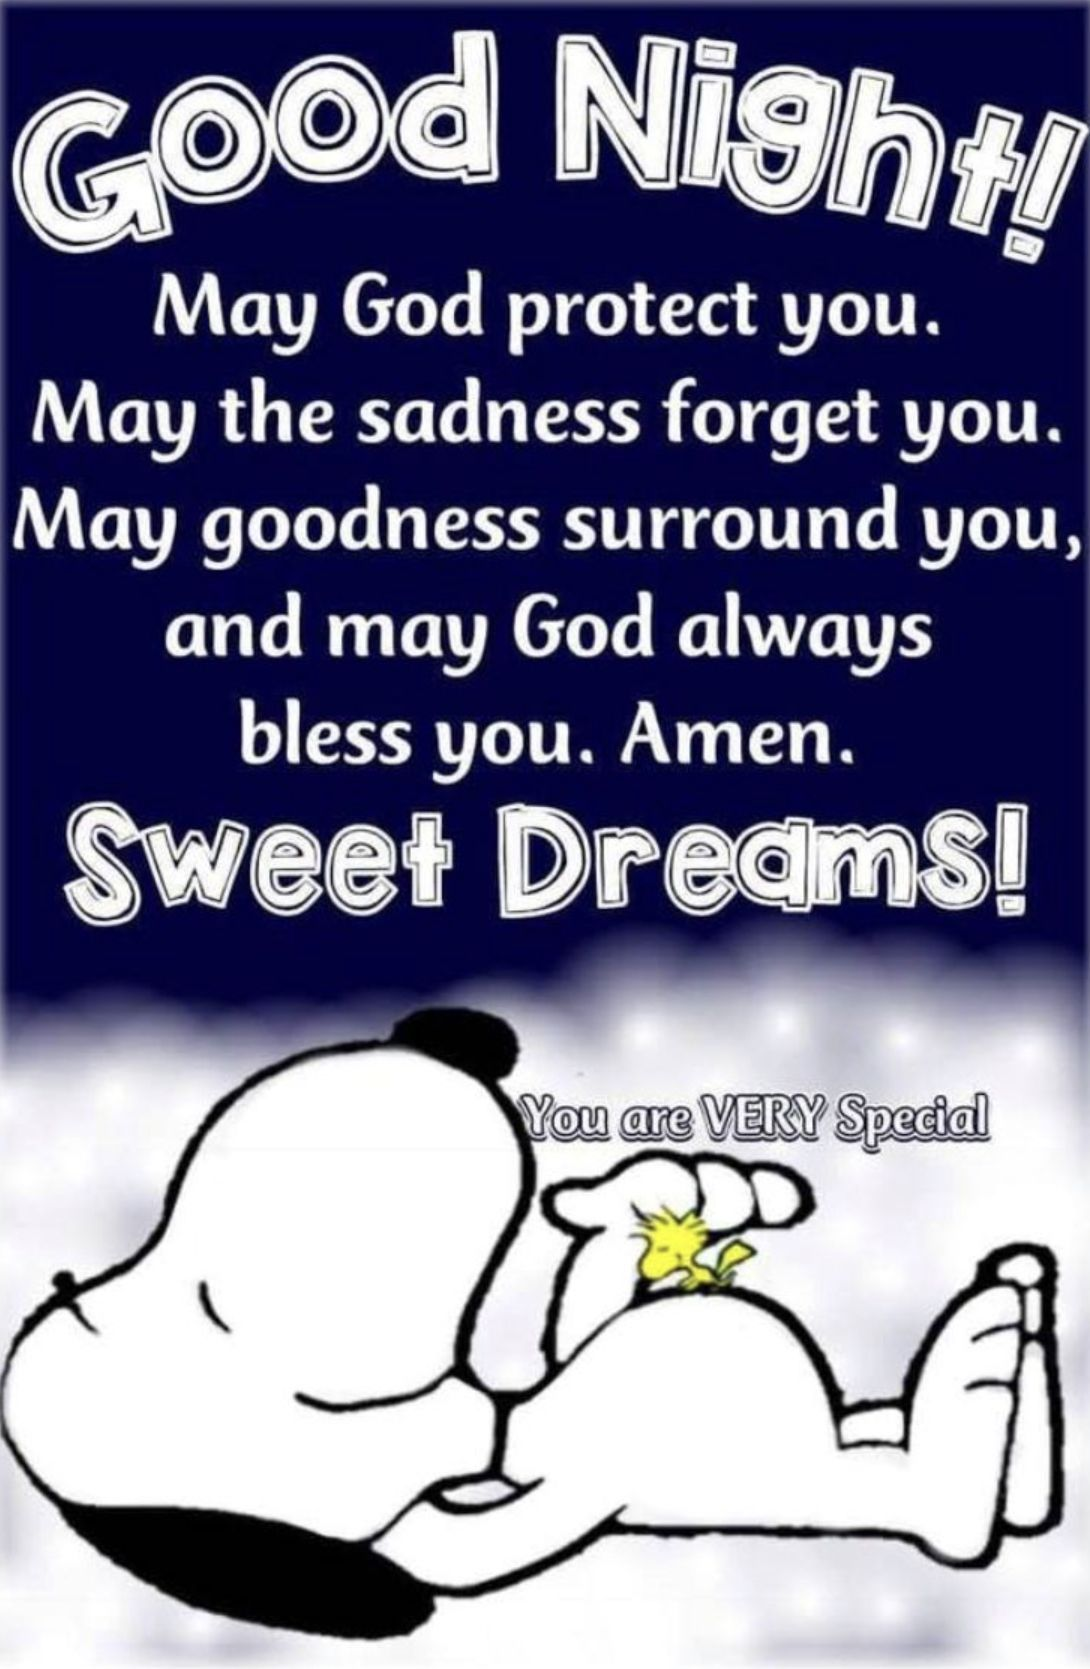 Just In Case I Want To Say Good Night Already Hope You Will Sleep Like An Ange Ange Case Good Hope Good Night Quotes Snoopy Quotes Good Night Blessings